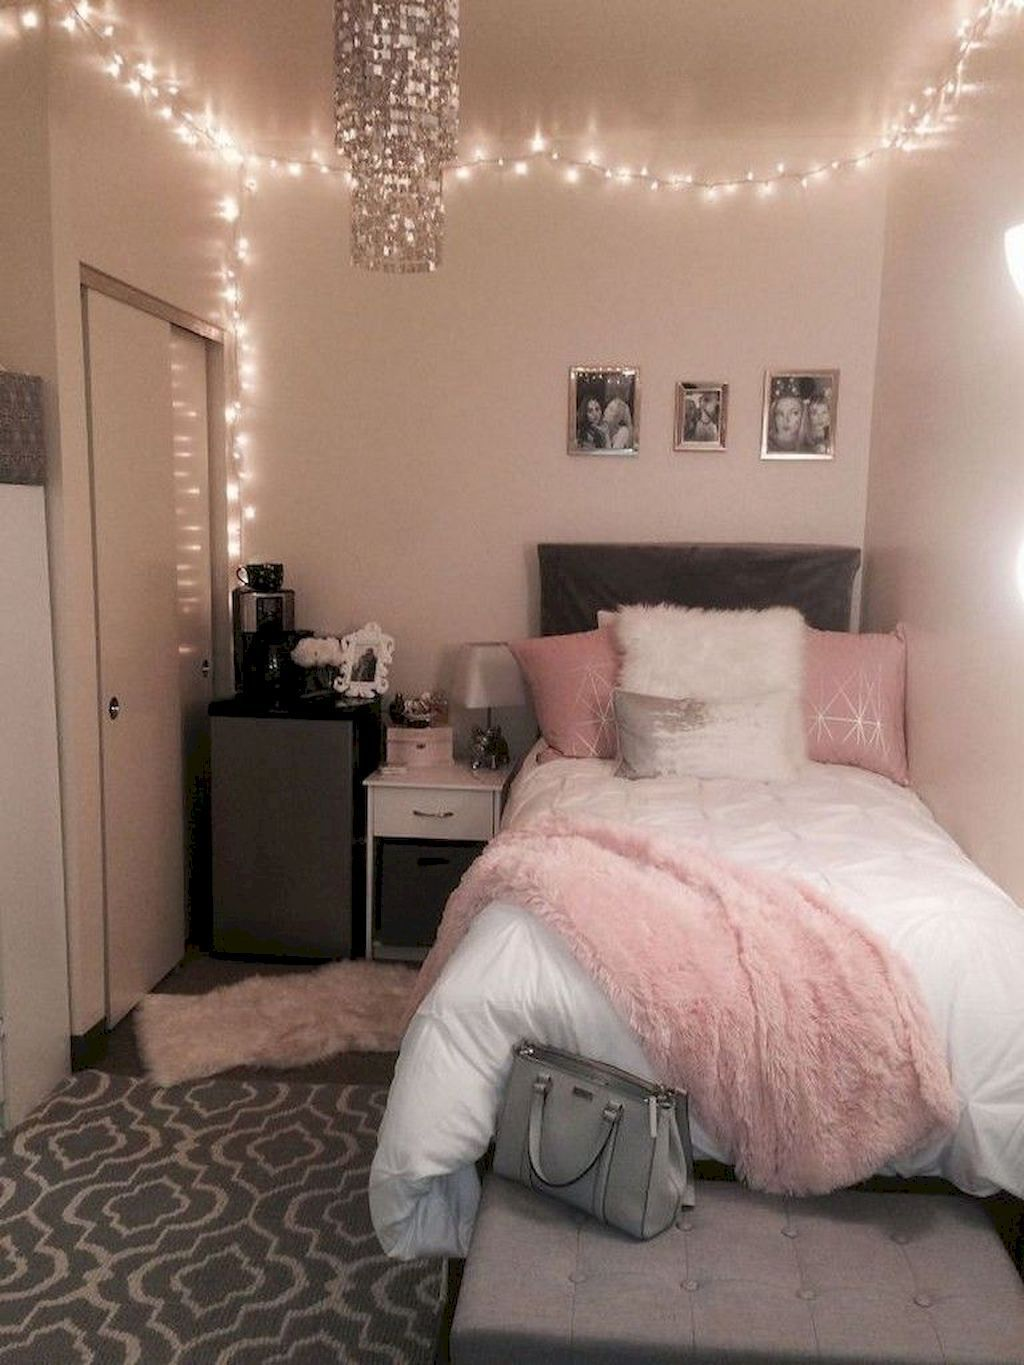 65 Cute Dorm Room Decorating Ideas On A Budget Insidexterior Adorable 65 Cu In 2020 Simple Bedroom Apartment Room Small Girls Bedrooms